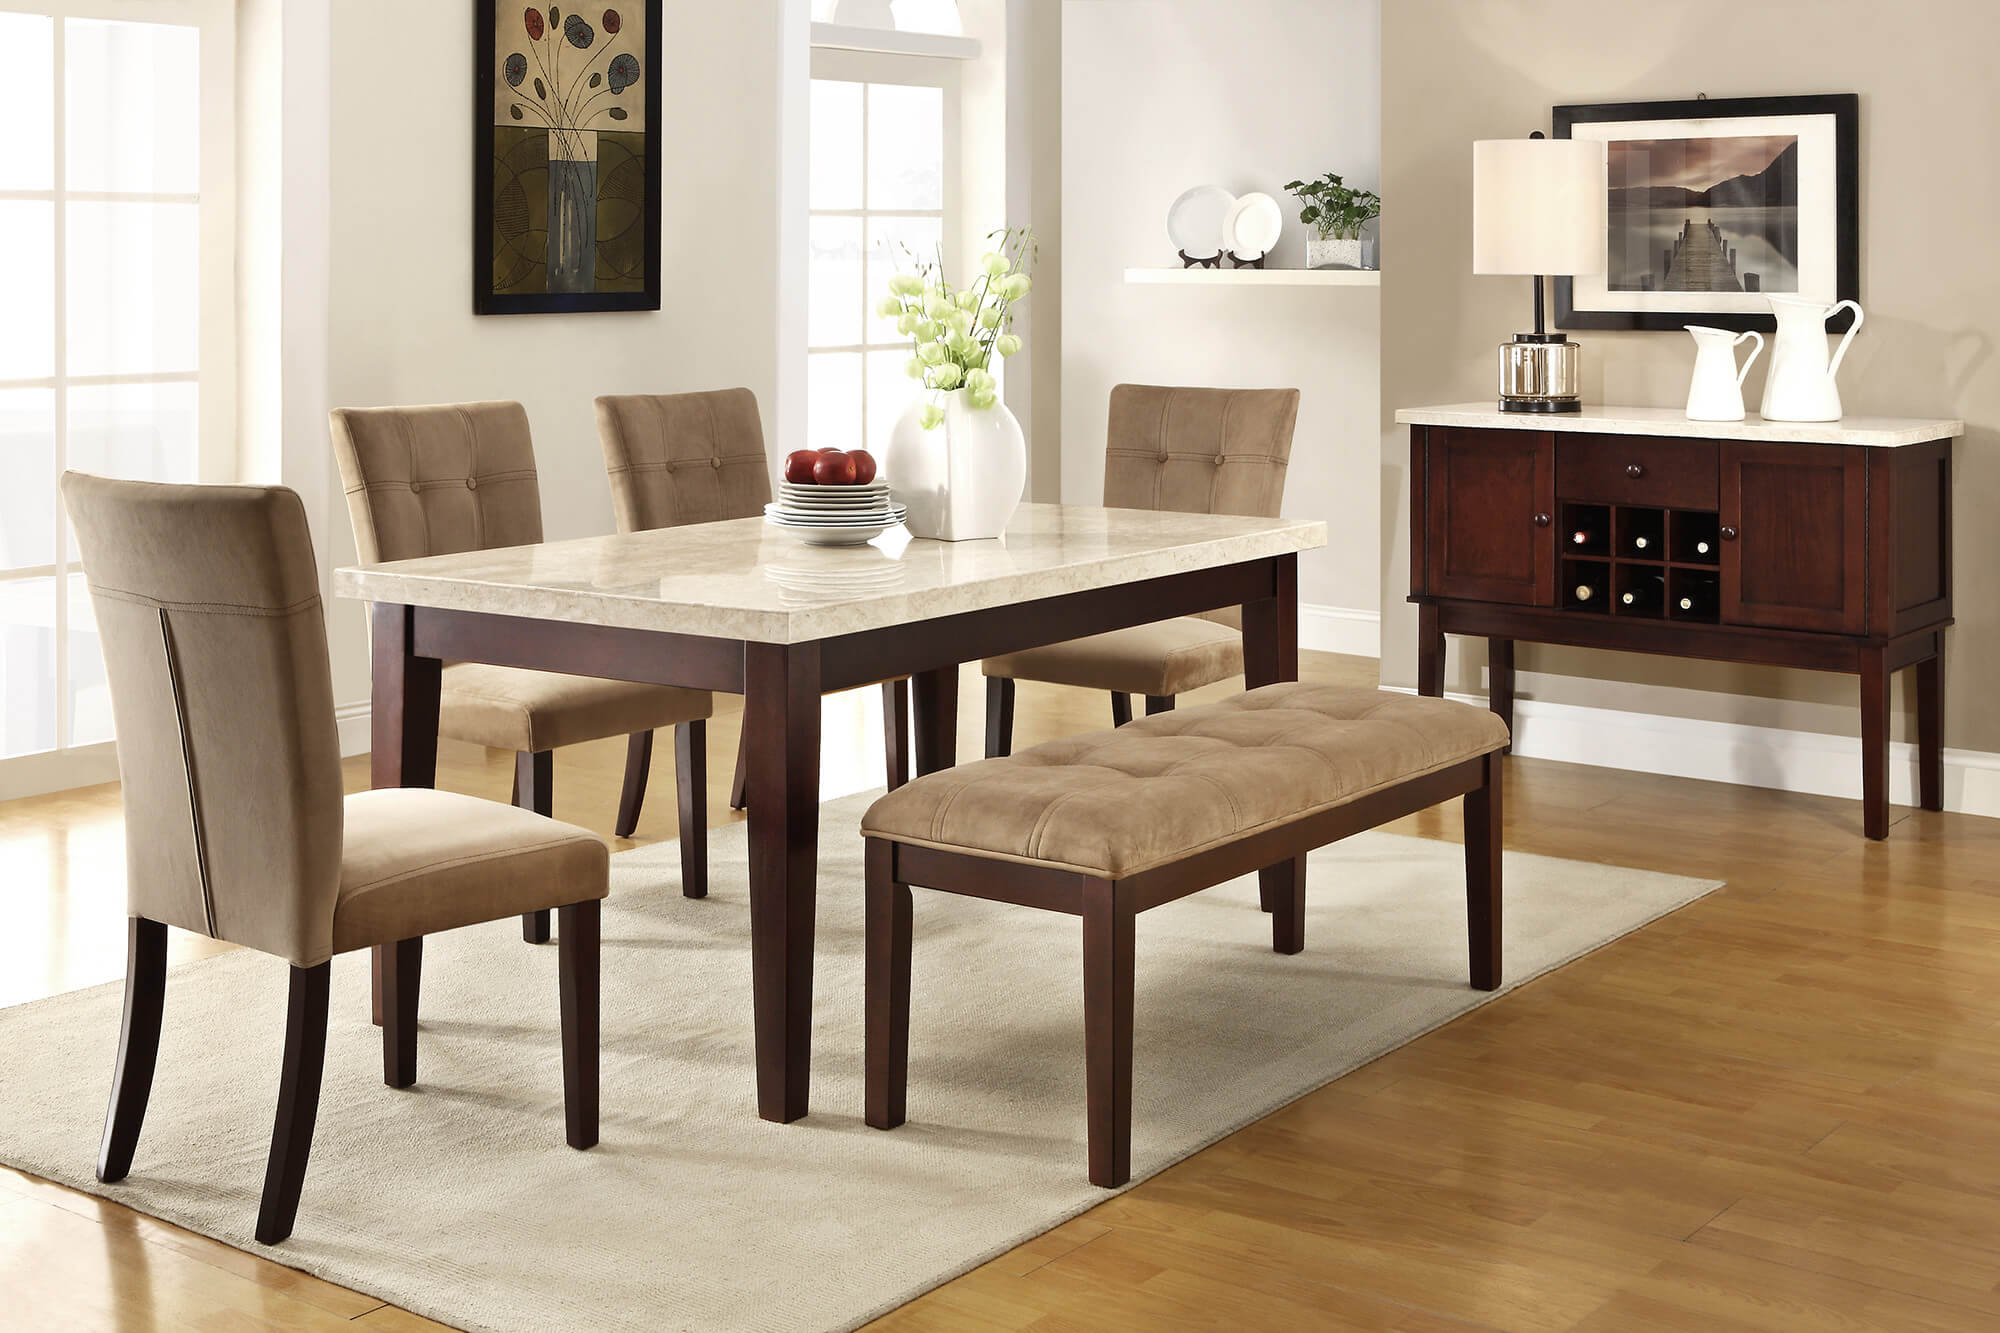 Dining Room Sets Big And Small With Bench Seating - High top dining table with bench